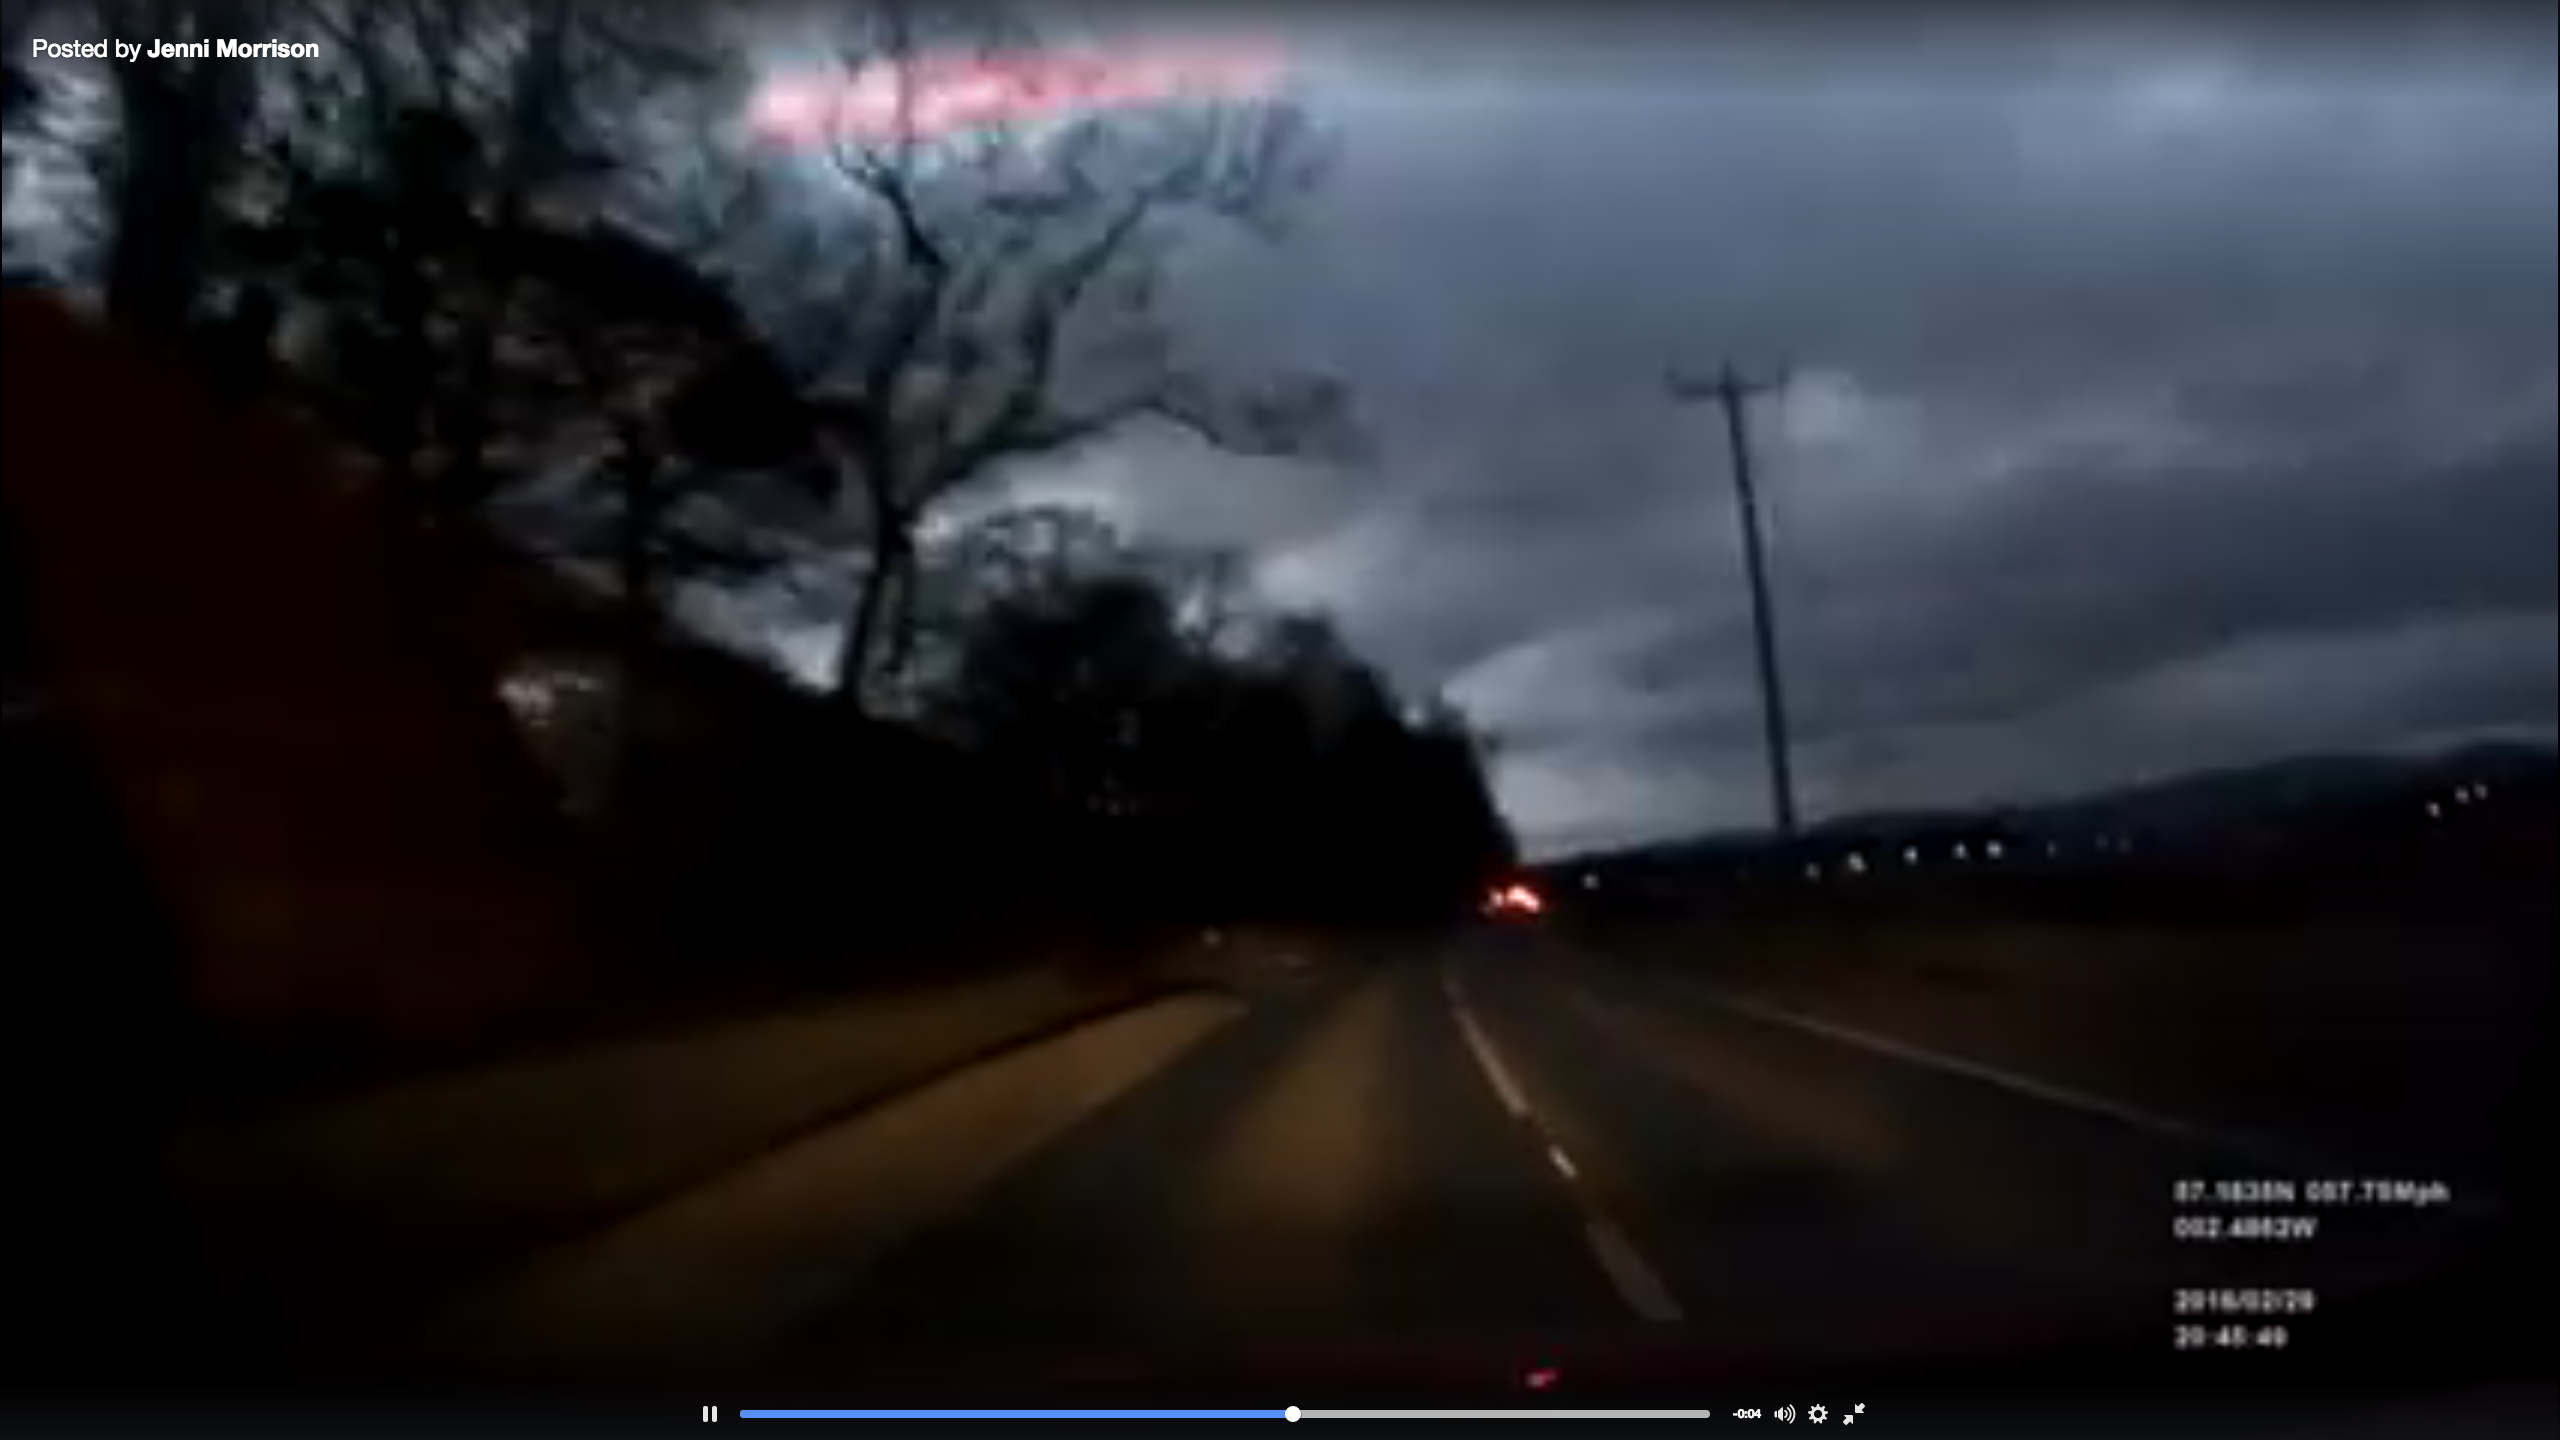 Picture of moment white light illuminated Scottish skies. From video by Jenni Morrison posted to Facebook